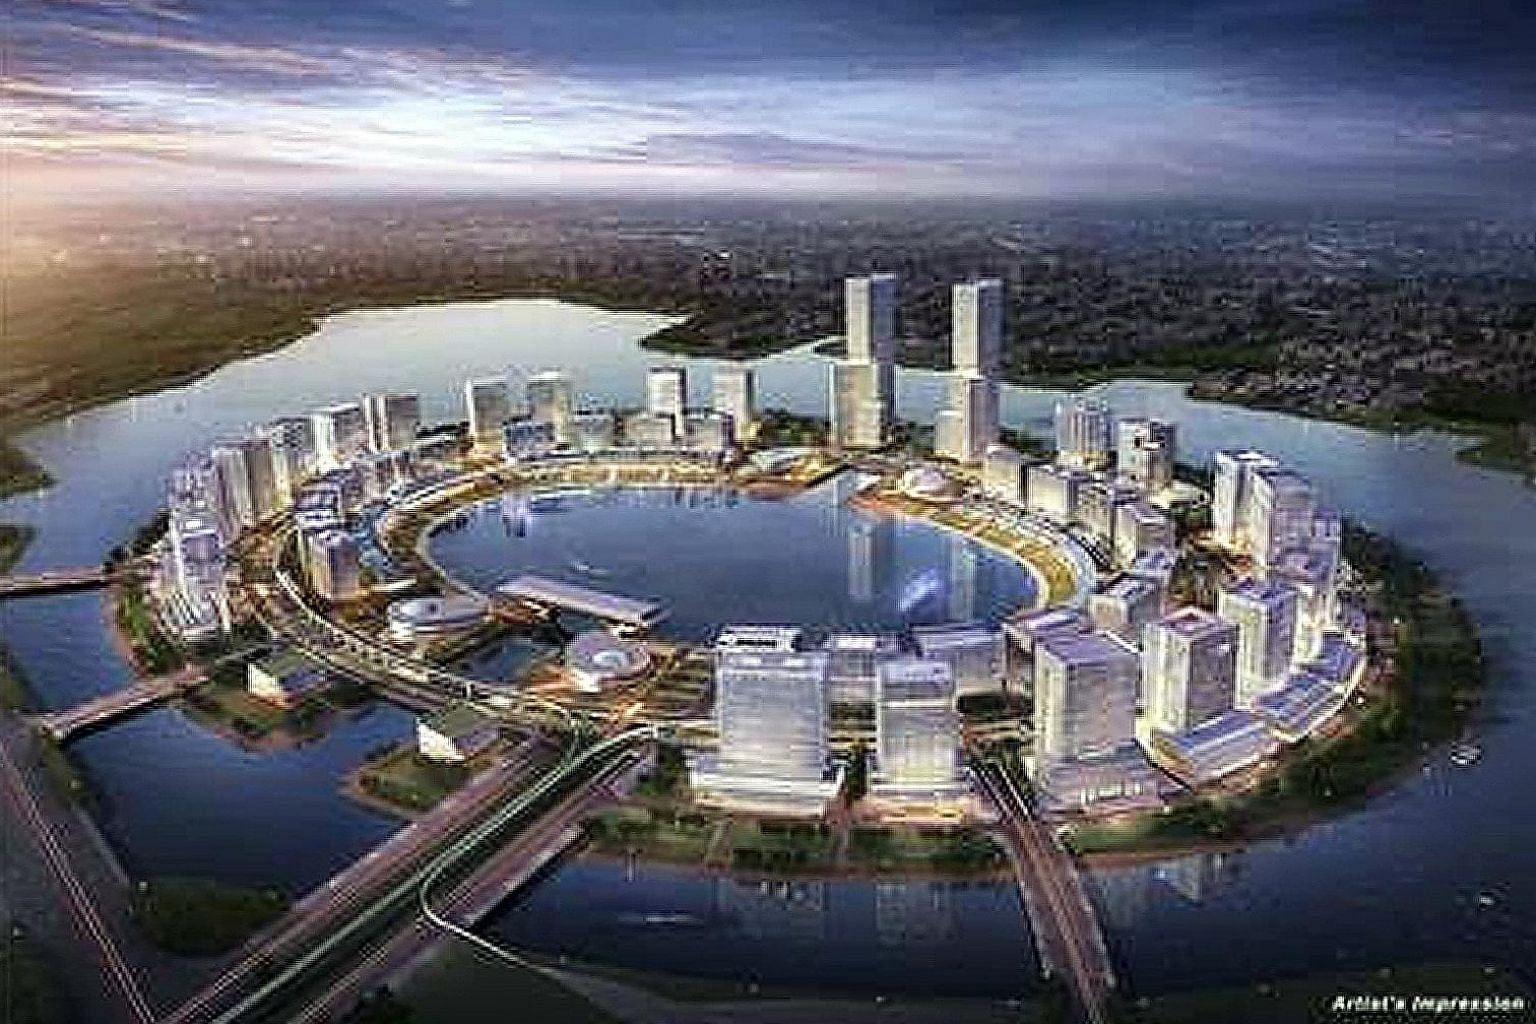 CDL has agreed to acquire a 70 per cent stake in Shanghai Hongqiao Sincere Centre (Phase 2), a commercial property in Hongqiao Central Business District, from Sincere Property Group for 1.2 billion yuan (S$239 million). An artist's impression of Zhen